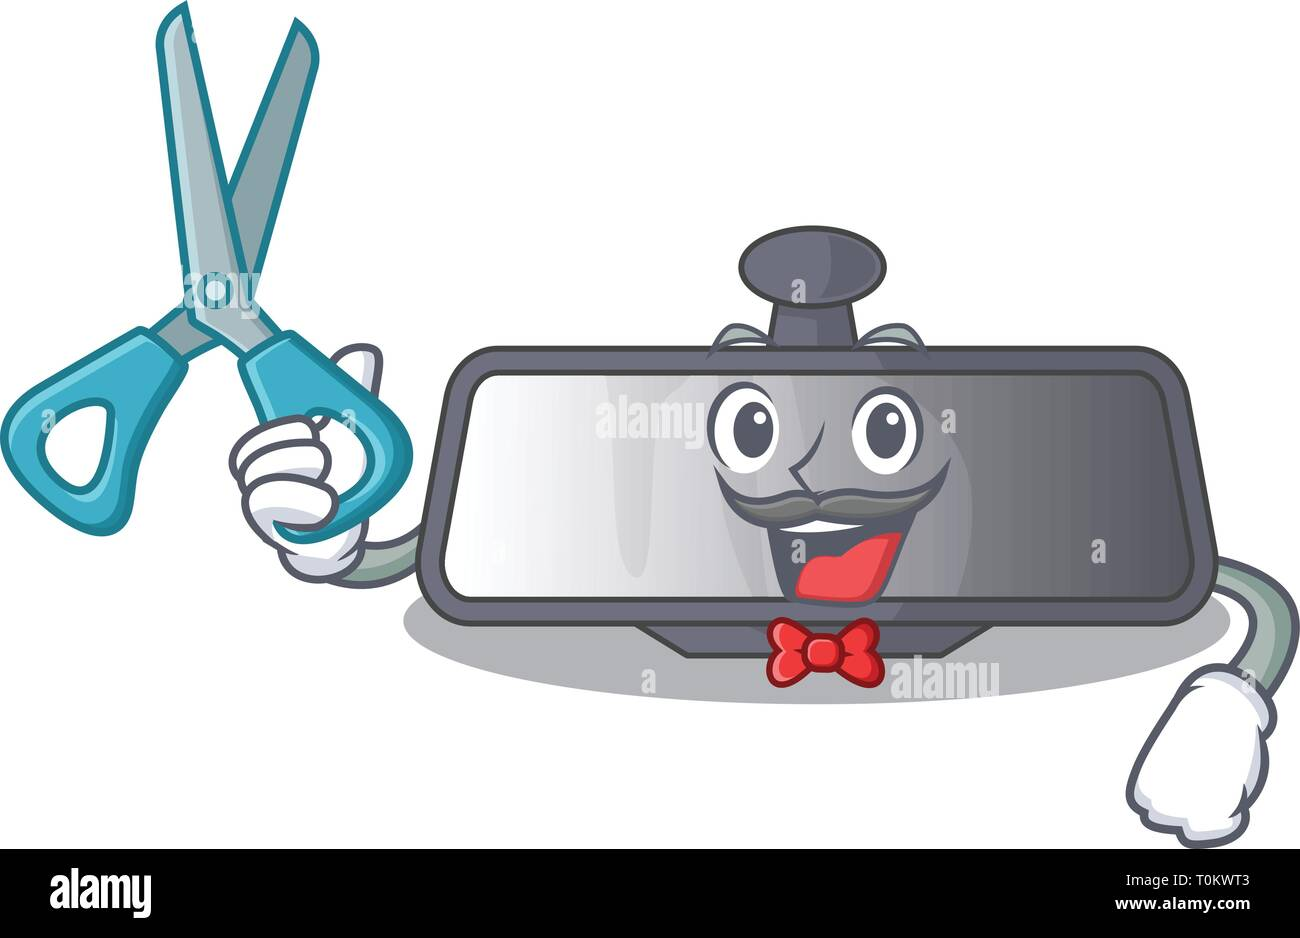 Barber rear view mirror isolated with mascot - Stock Vector